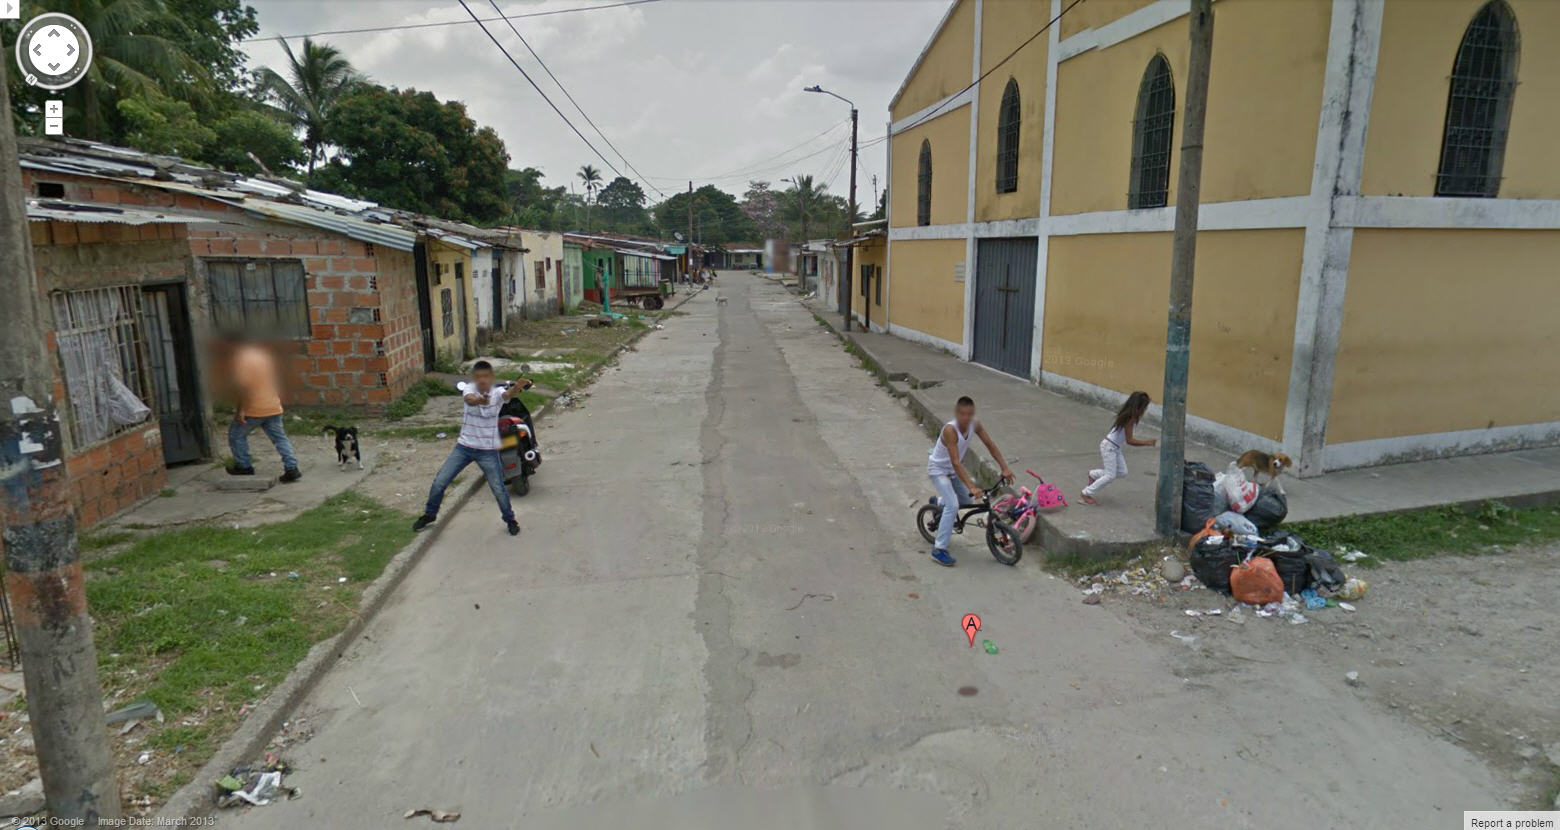 People Shooting At The Google Street View Car In Colombia